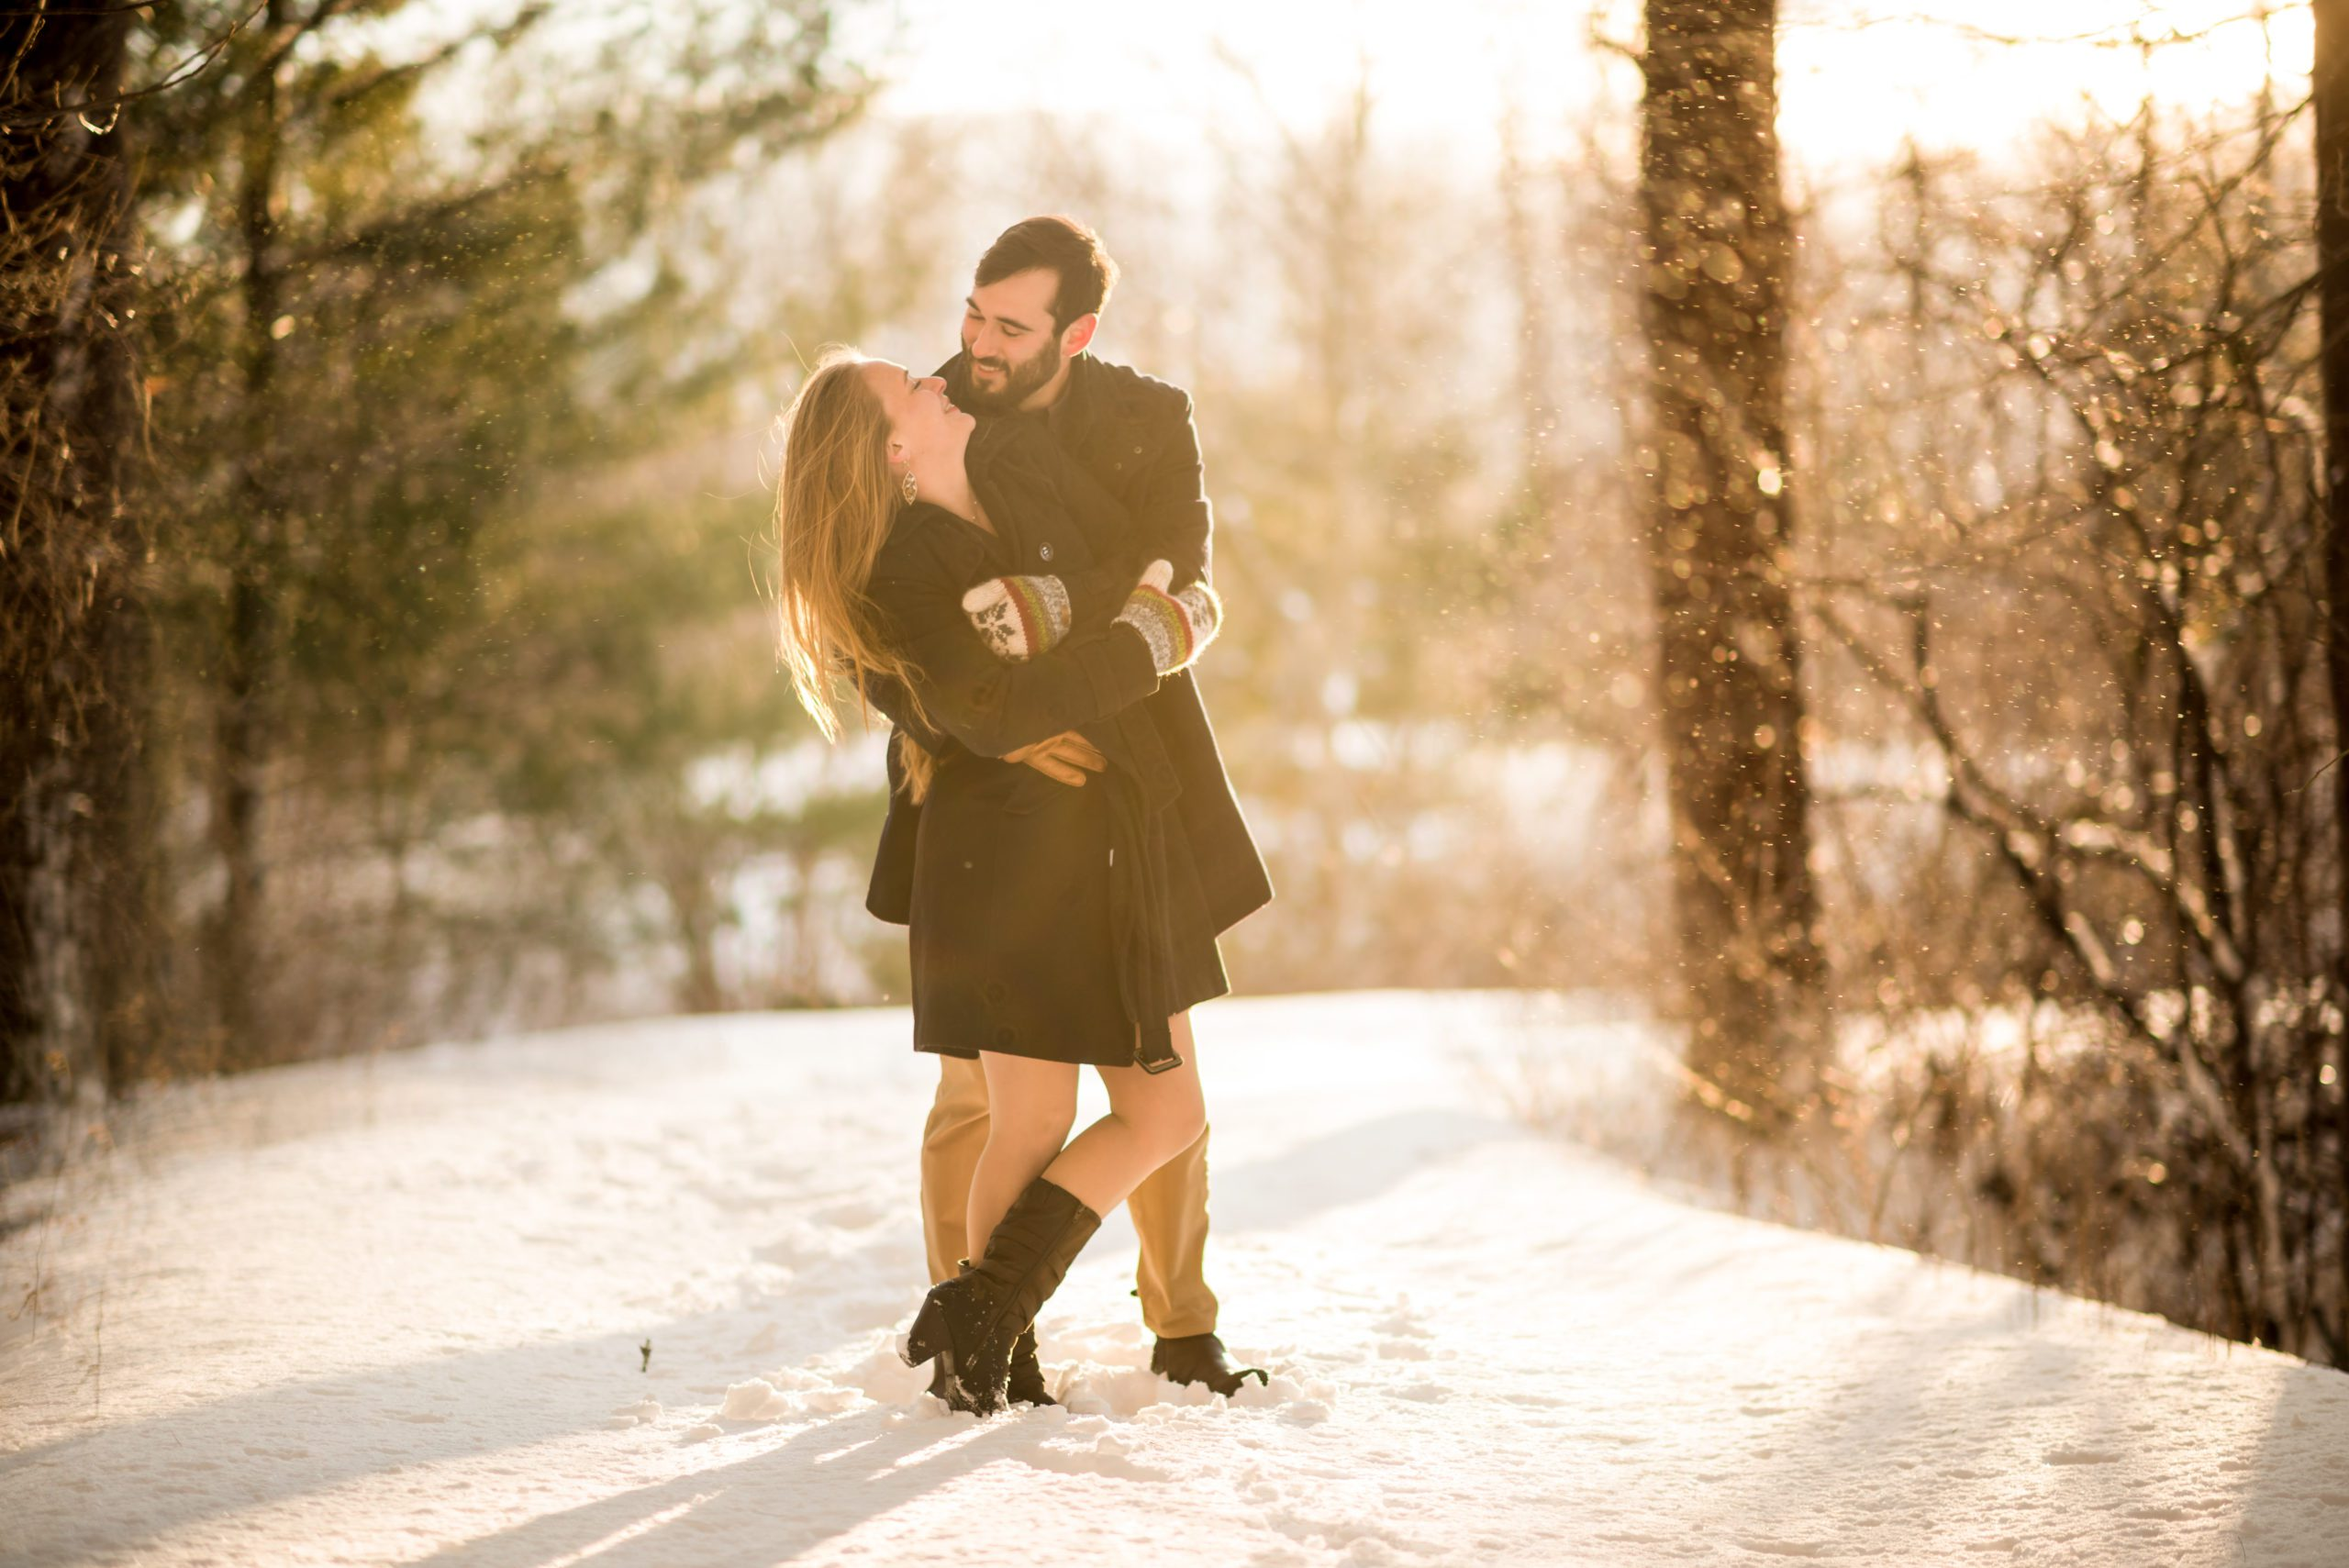 How to plan for a winter photo session